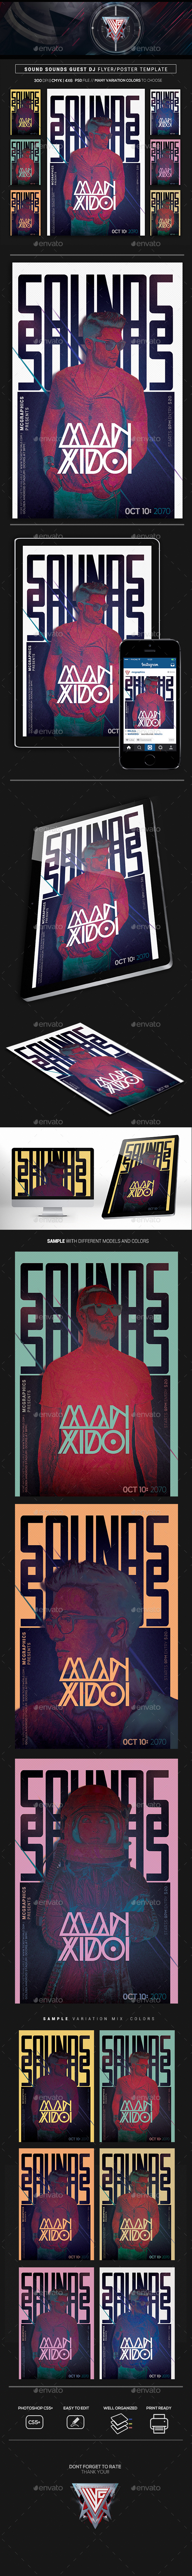 Sound Sounds Guest Dj Flyer/Poster Template - Events Flyers